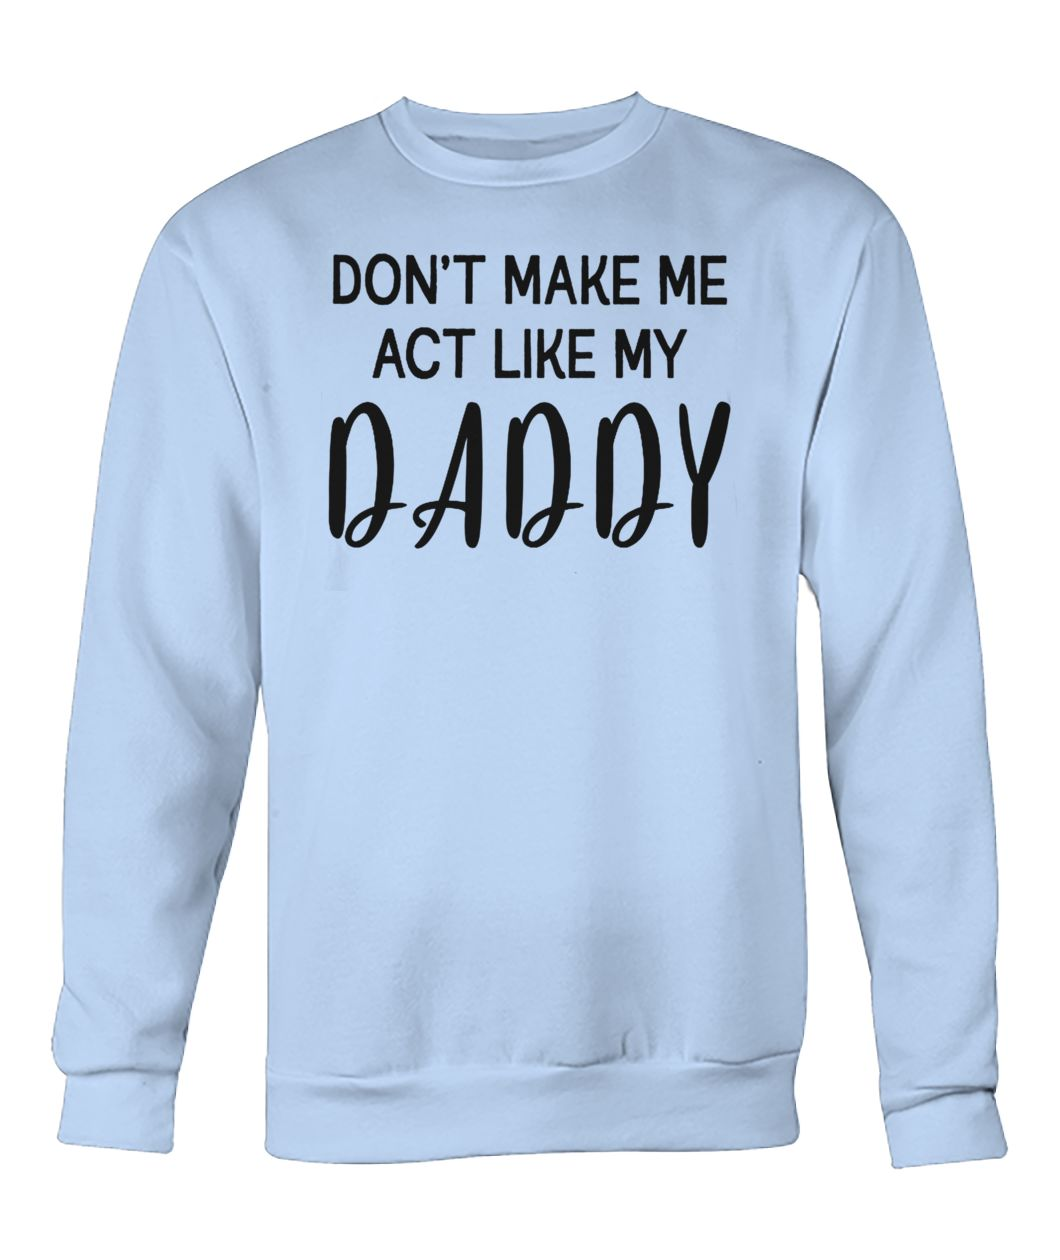 Don't make me act like my daddy crew neck sweatshirt